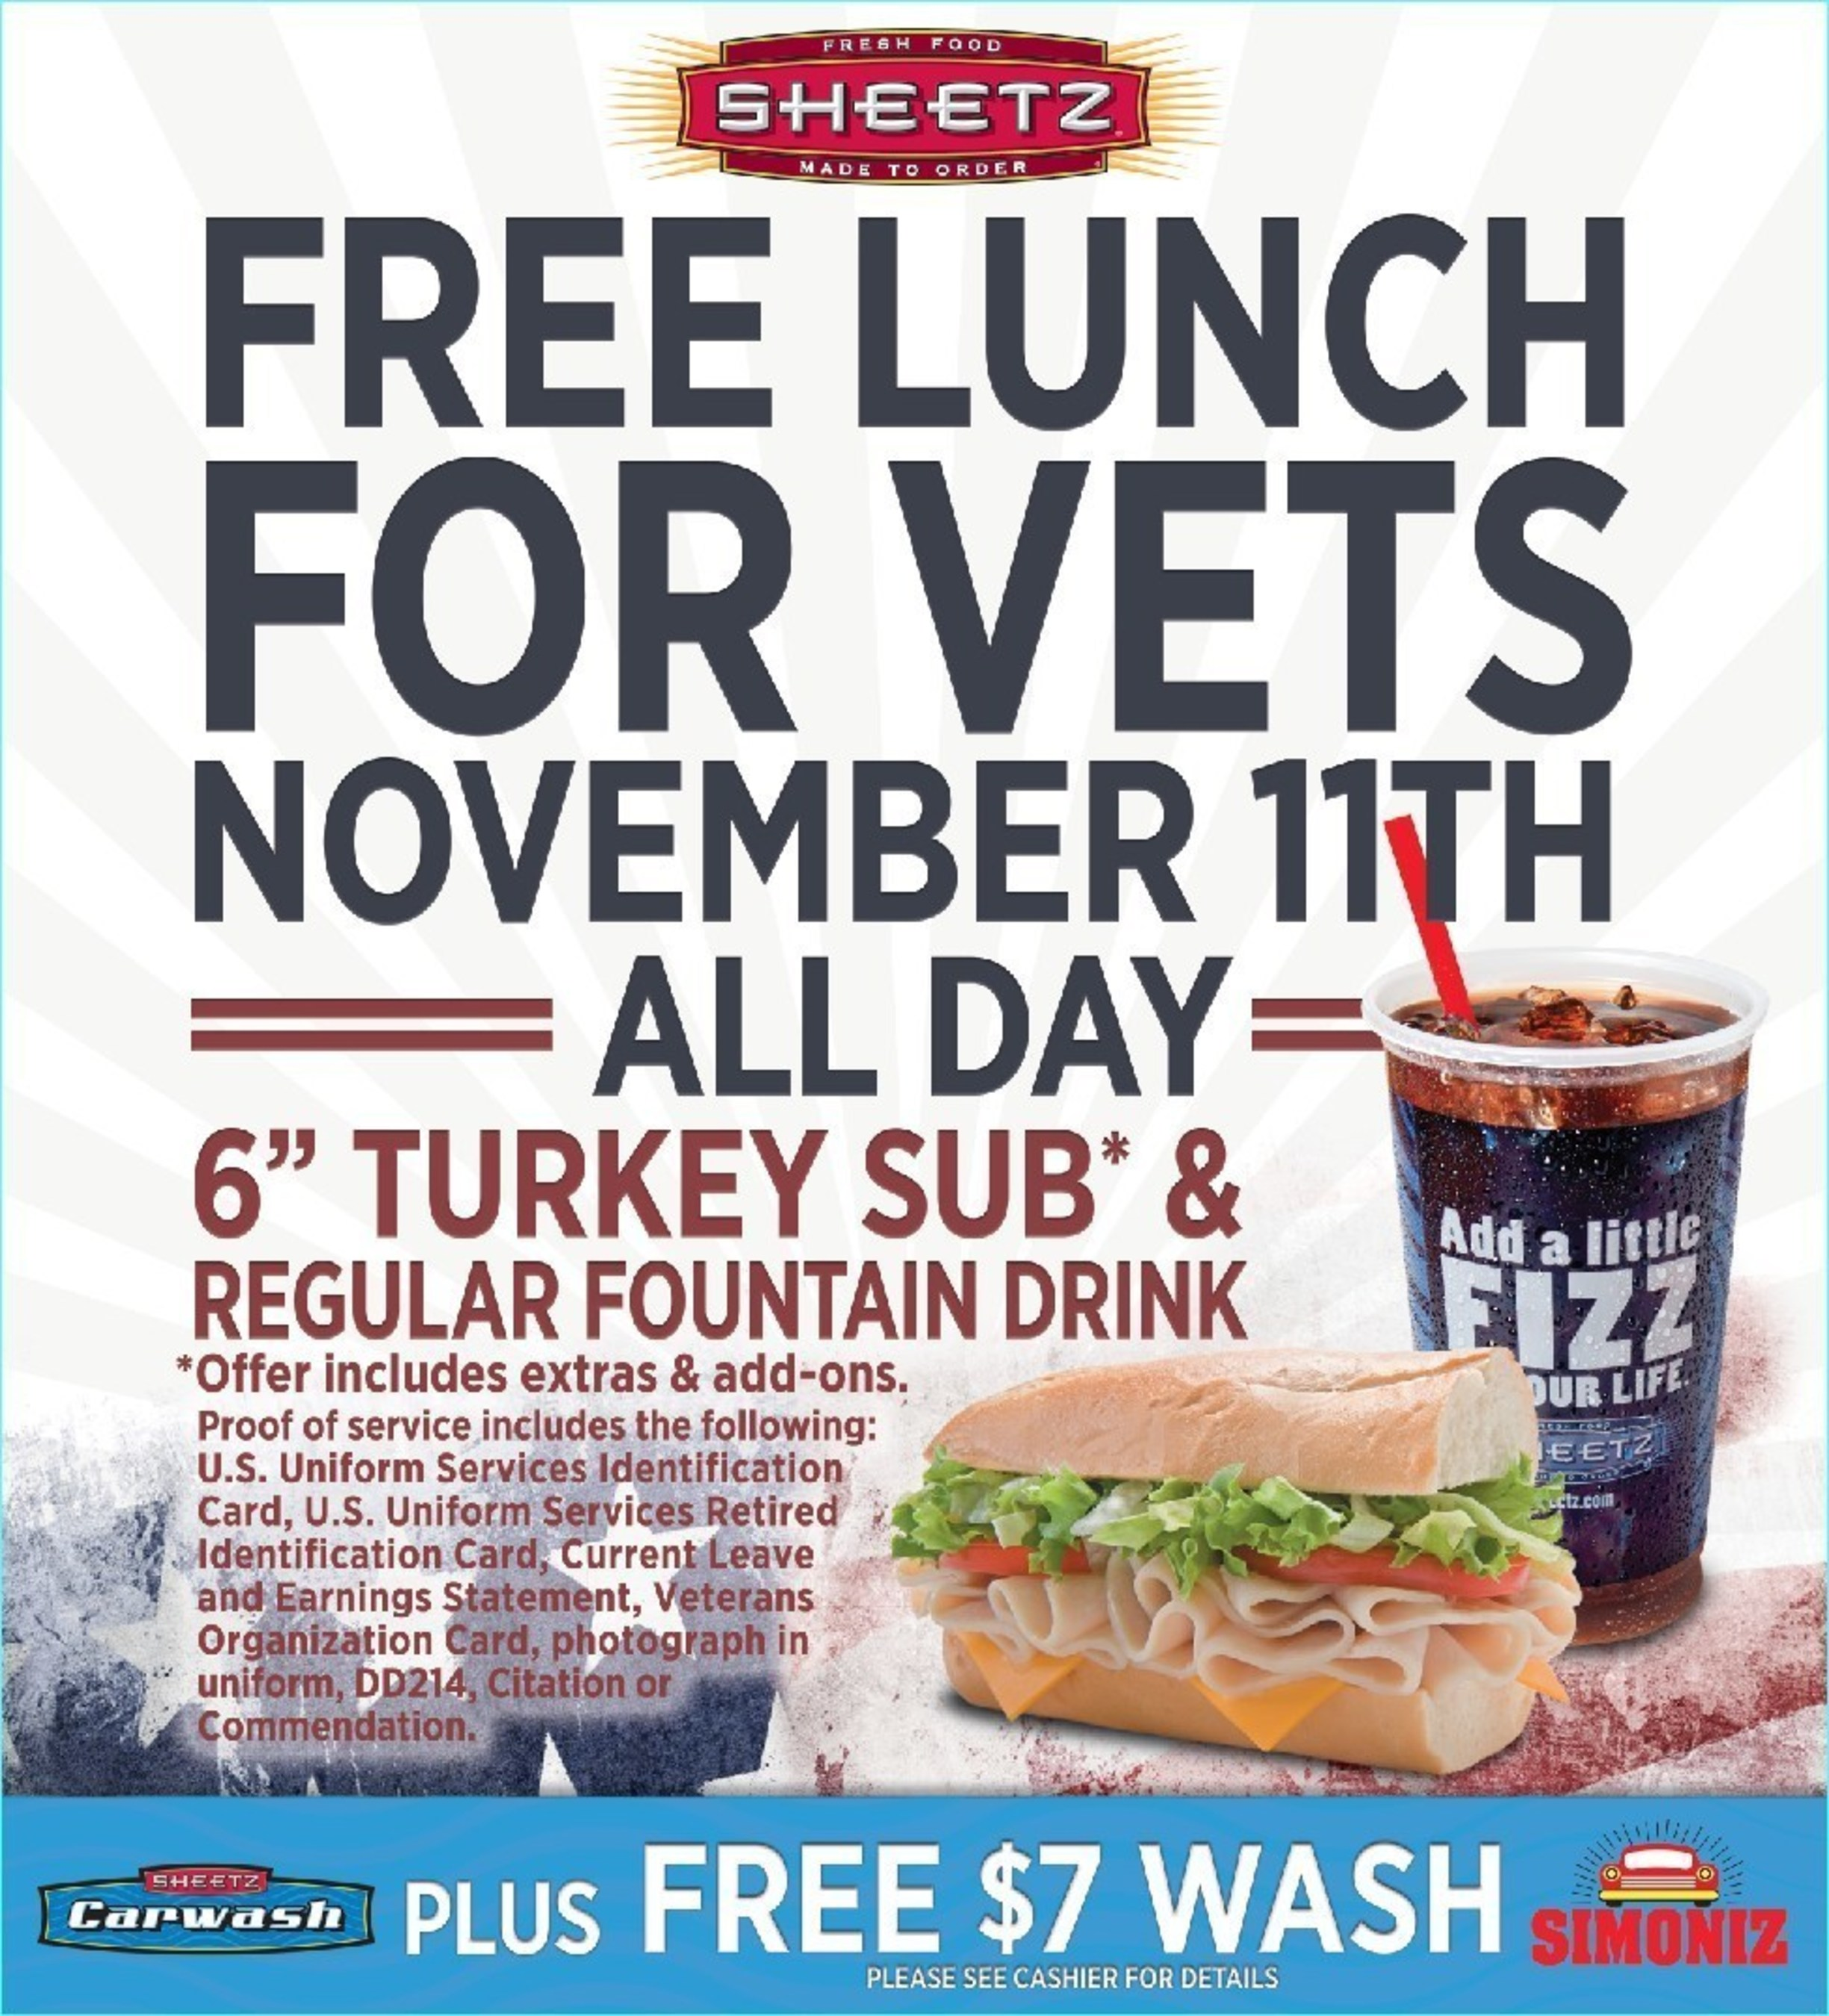 Sheetz Veterans Day Offer for veterans and active duty military personnel.